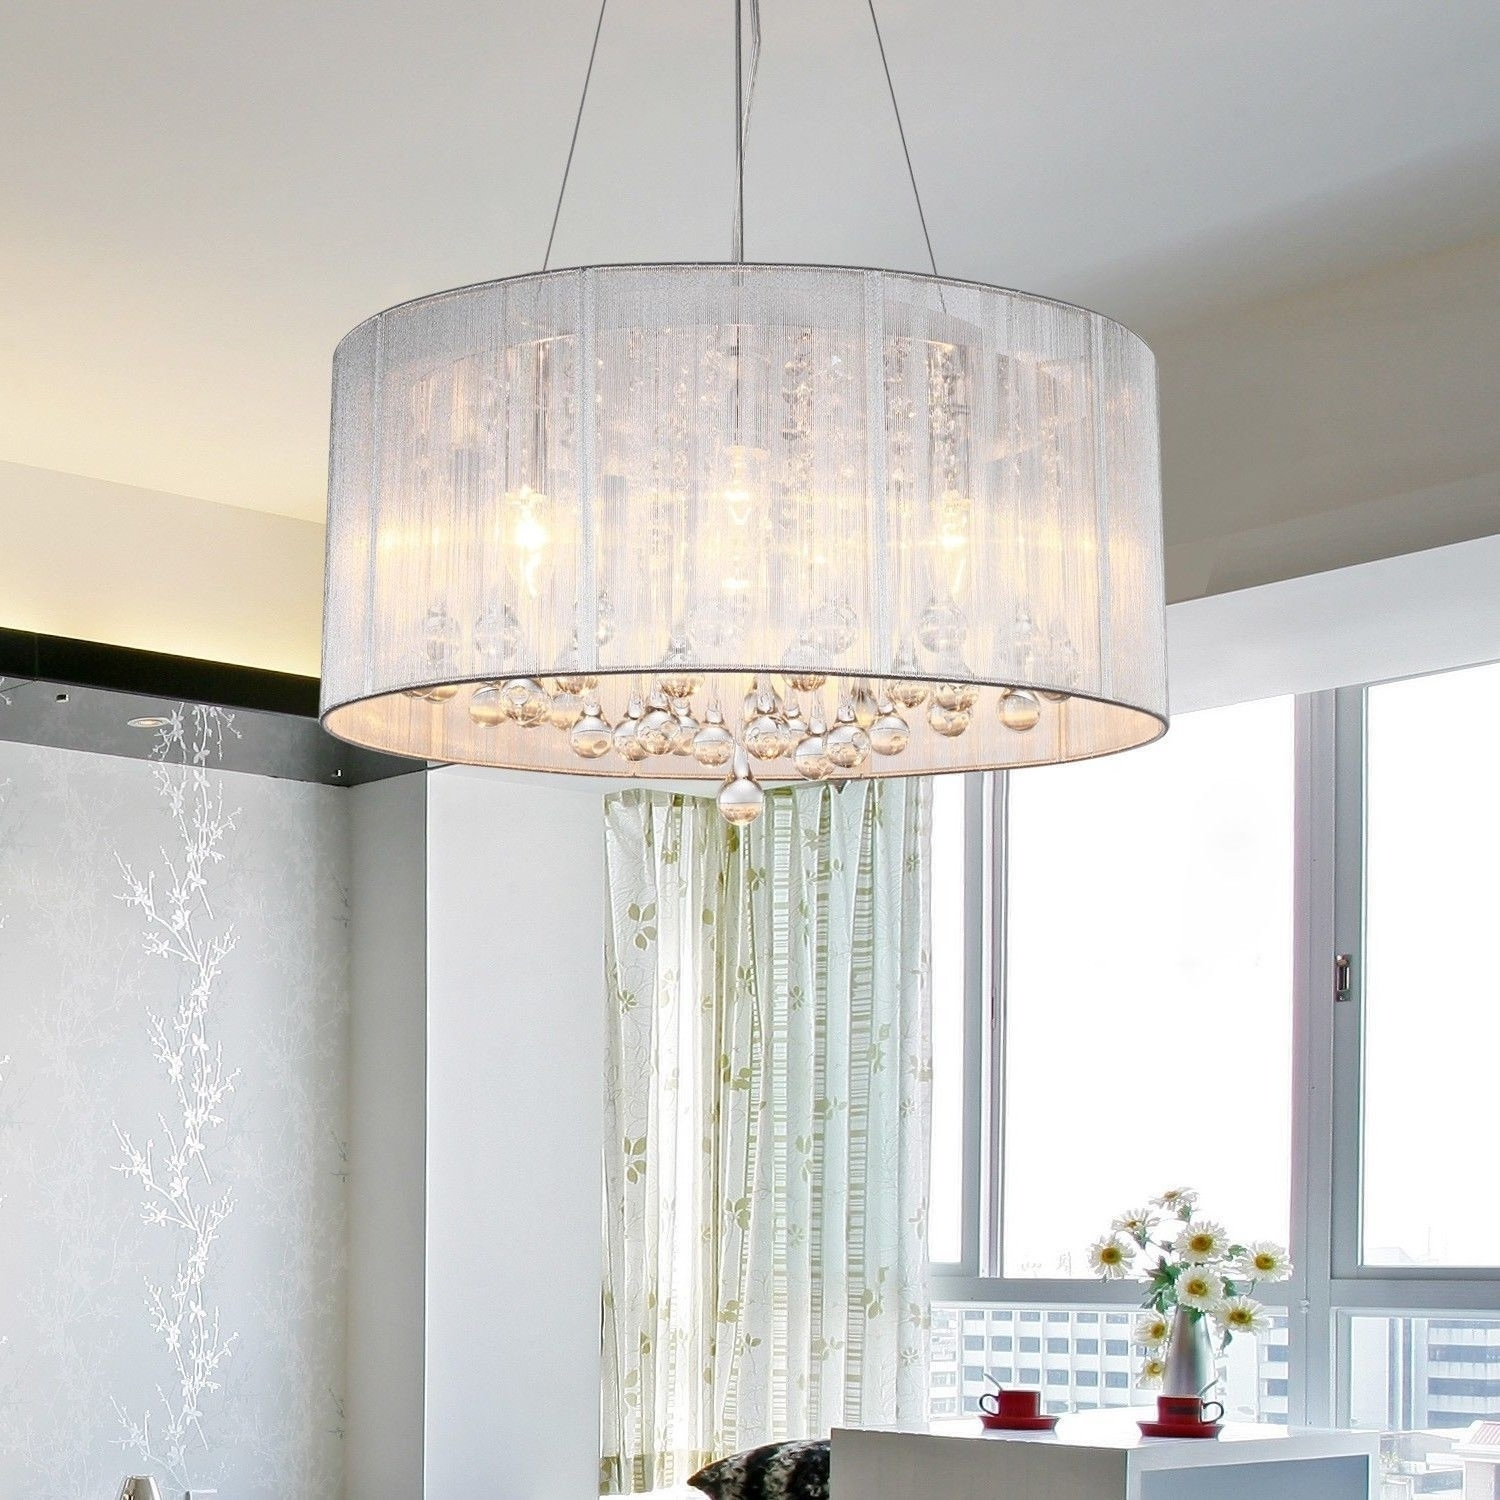 Lampshades For Chandeliers In Widely Used Lamp Shades For Chandeliers Small : Lamp World (View 8 of 15)